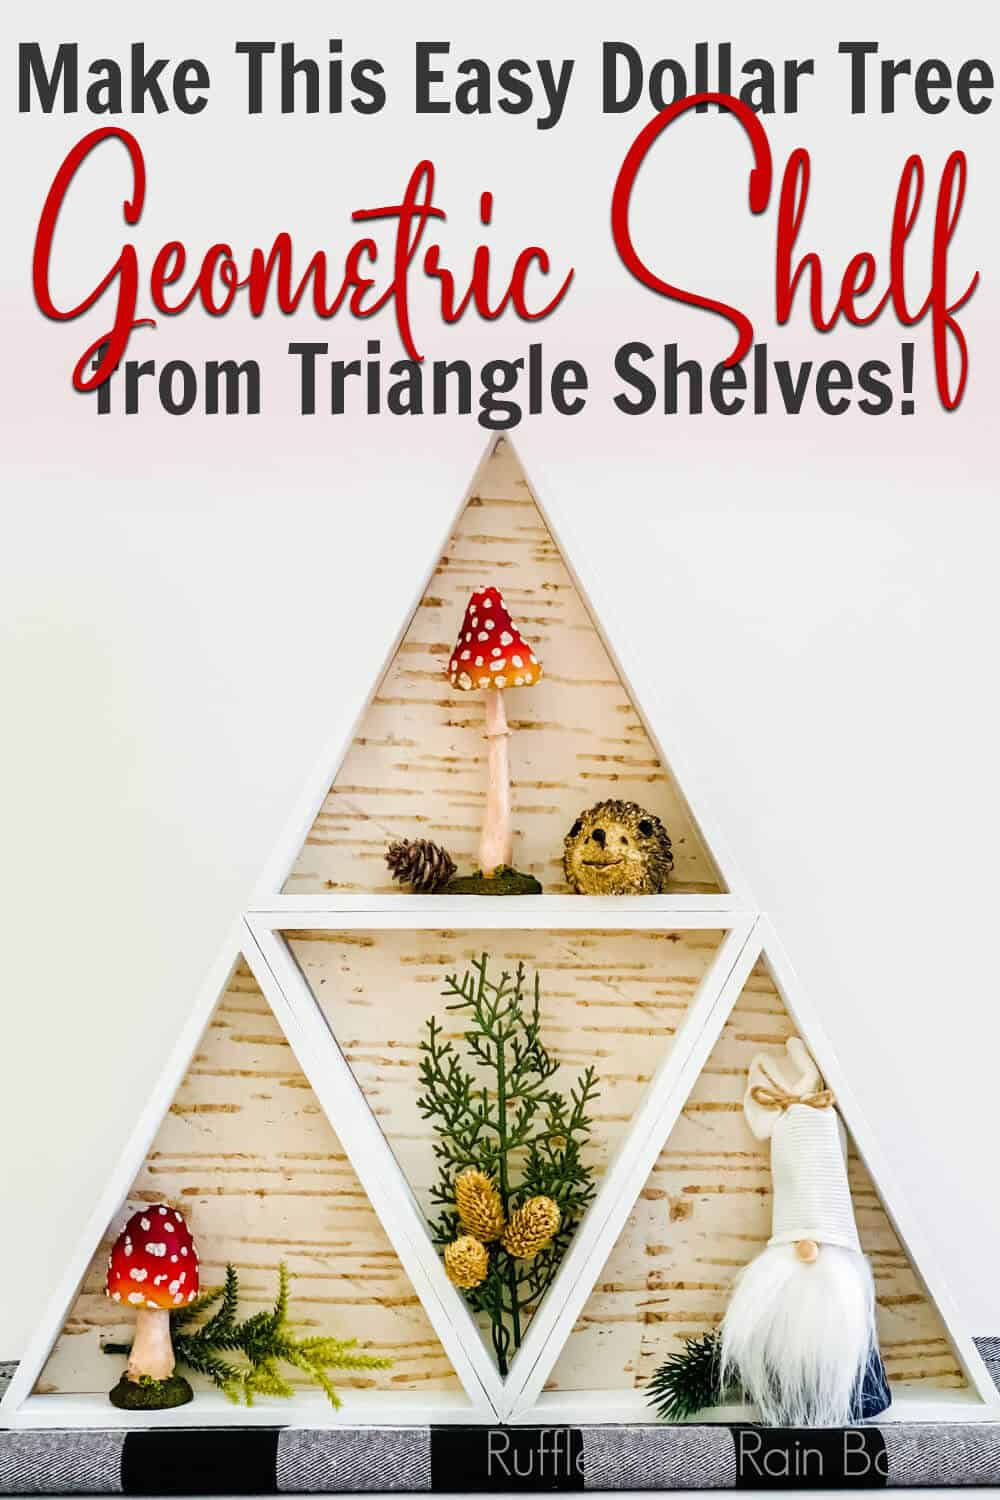 diy dollar tree craft from triangle shelves with text which reads make this easy dollar tree geometric shelf from triangle shelves!